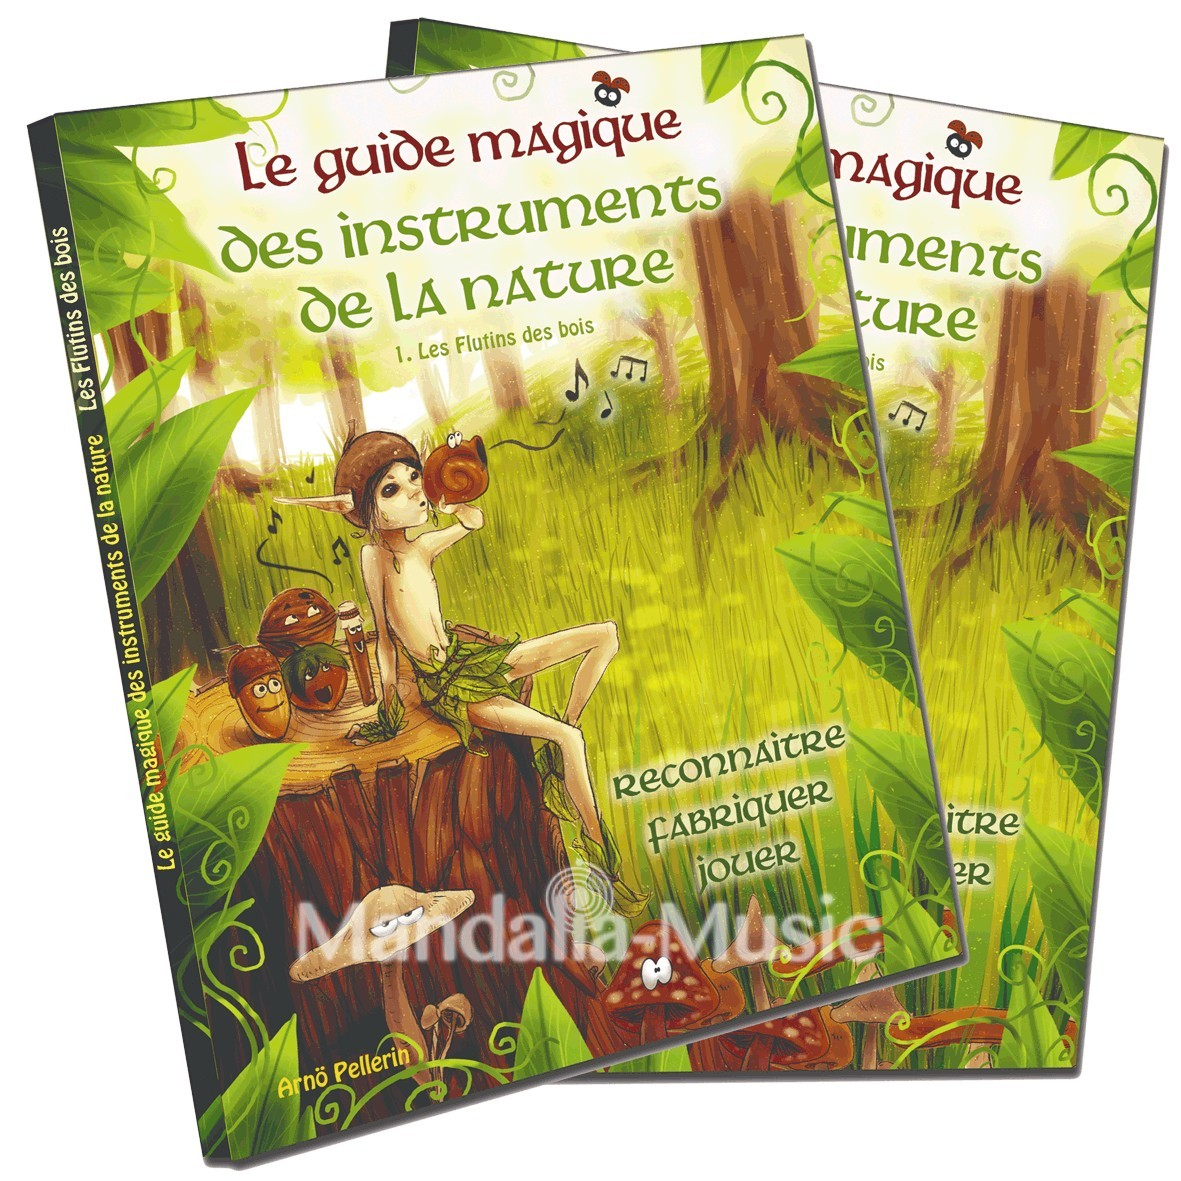 DUO Le guide magique des instruments de la nature